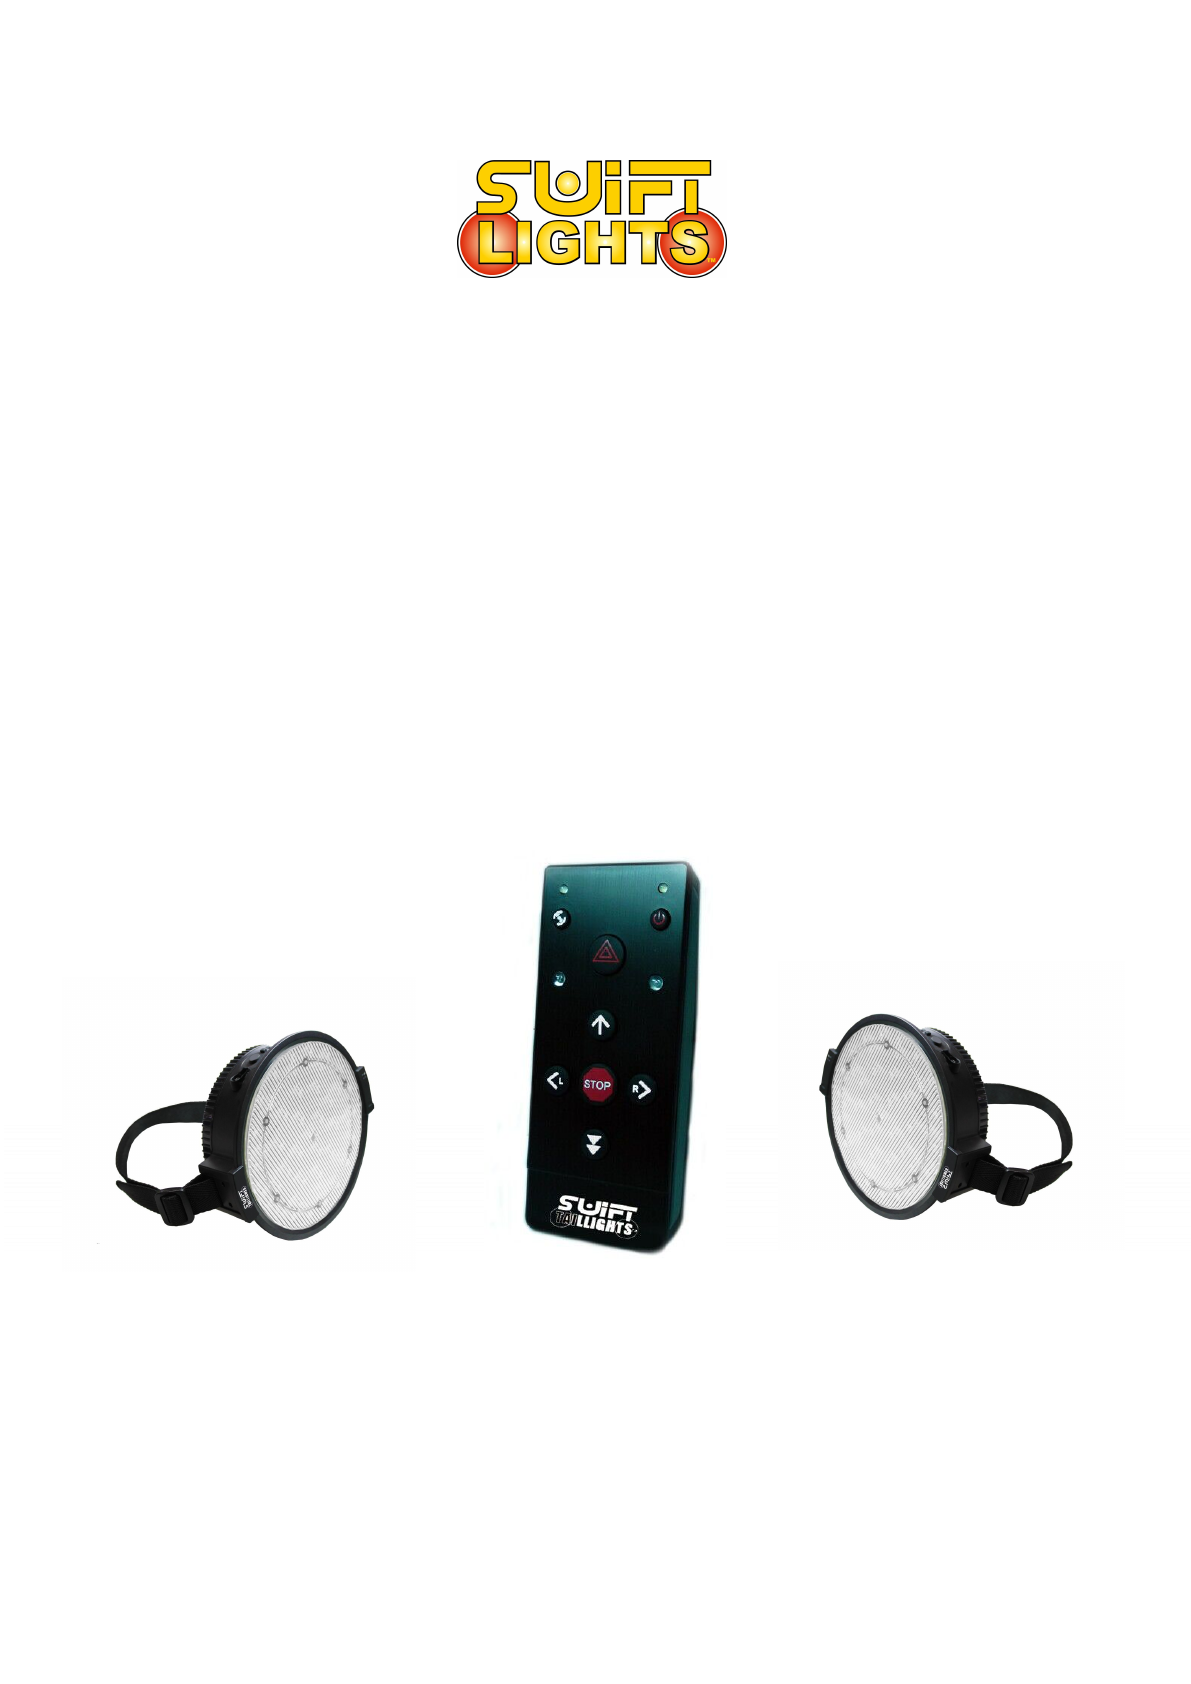 Portable Wireless Remote Controlled Temporary Tail Light Swift Taillights ST01